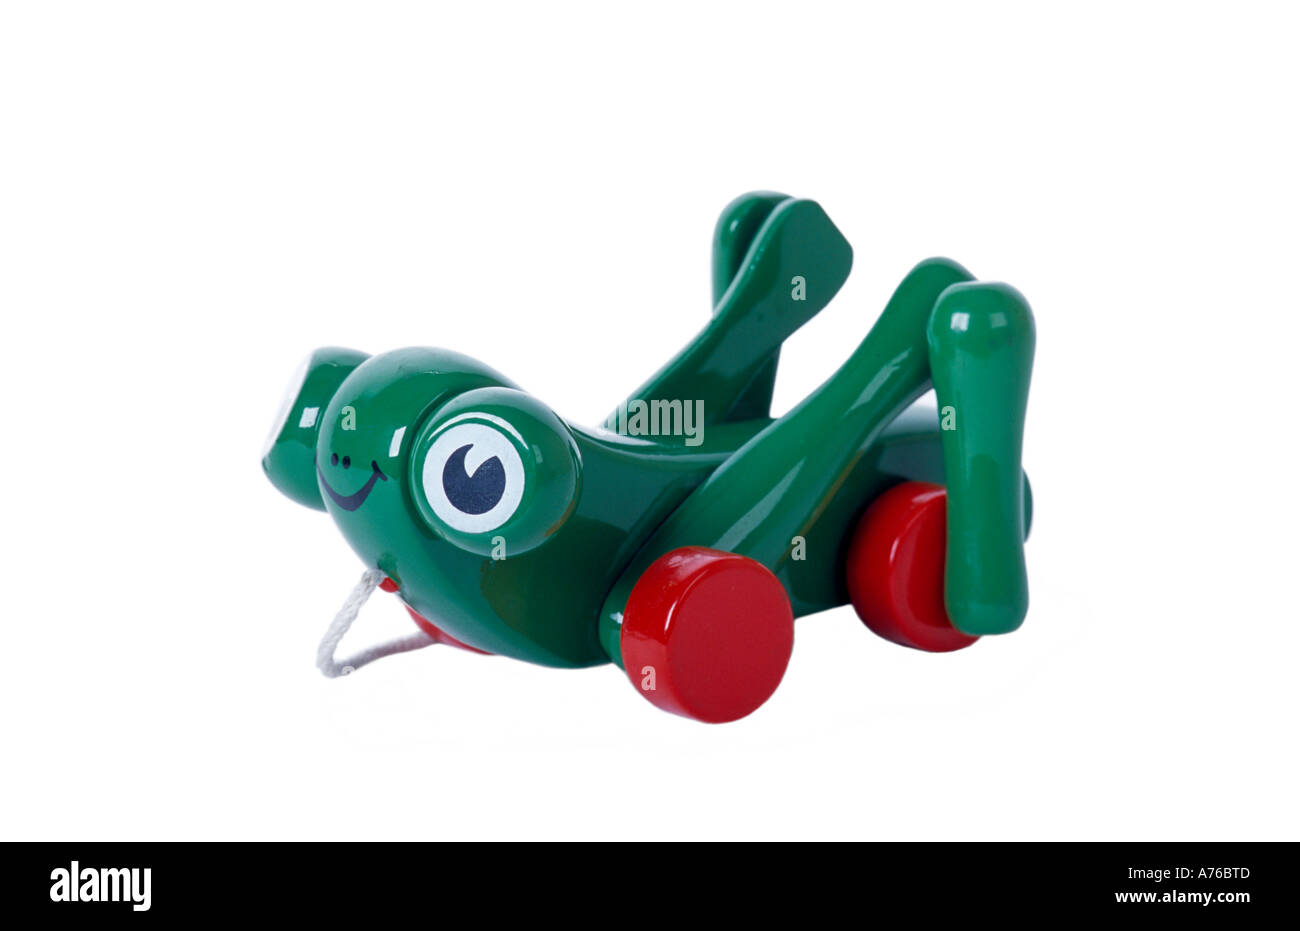 Pull-along child's frog grasshopper toy on a pure white background. - Stock Image